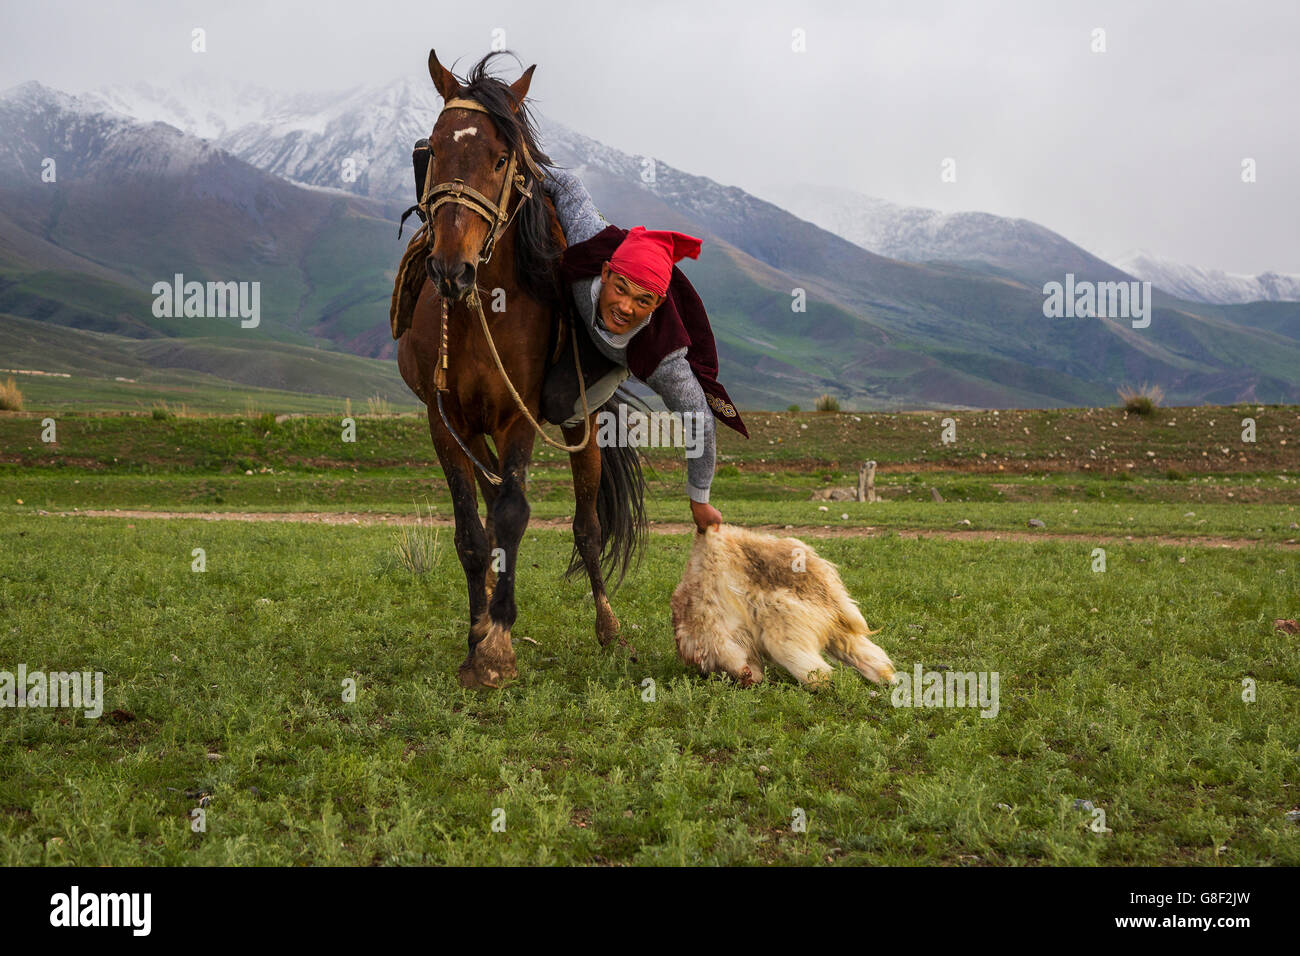 Nomad horse rider grabs the goat carcass during the traditional horse games of Ulak Tartysh. - Stock Image